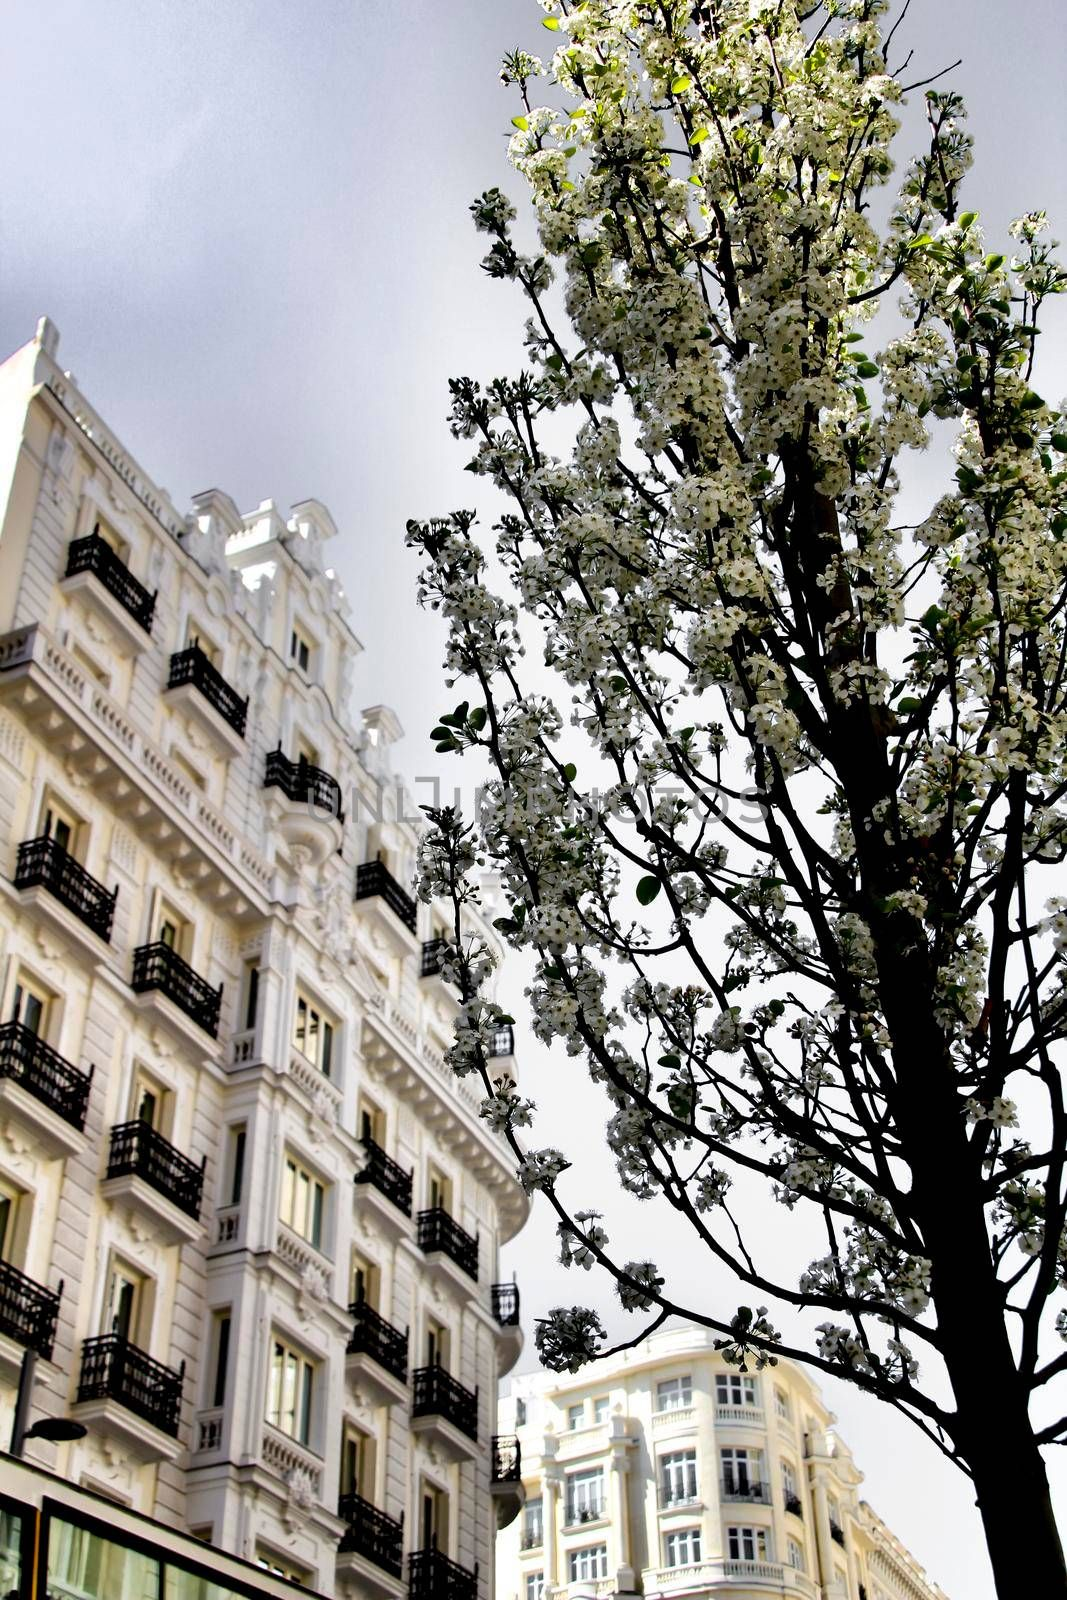 Beautiful tree with white flowers in the street in Madrid in Spring. Vintage facades in the background.